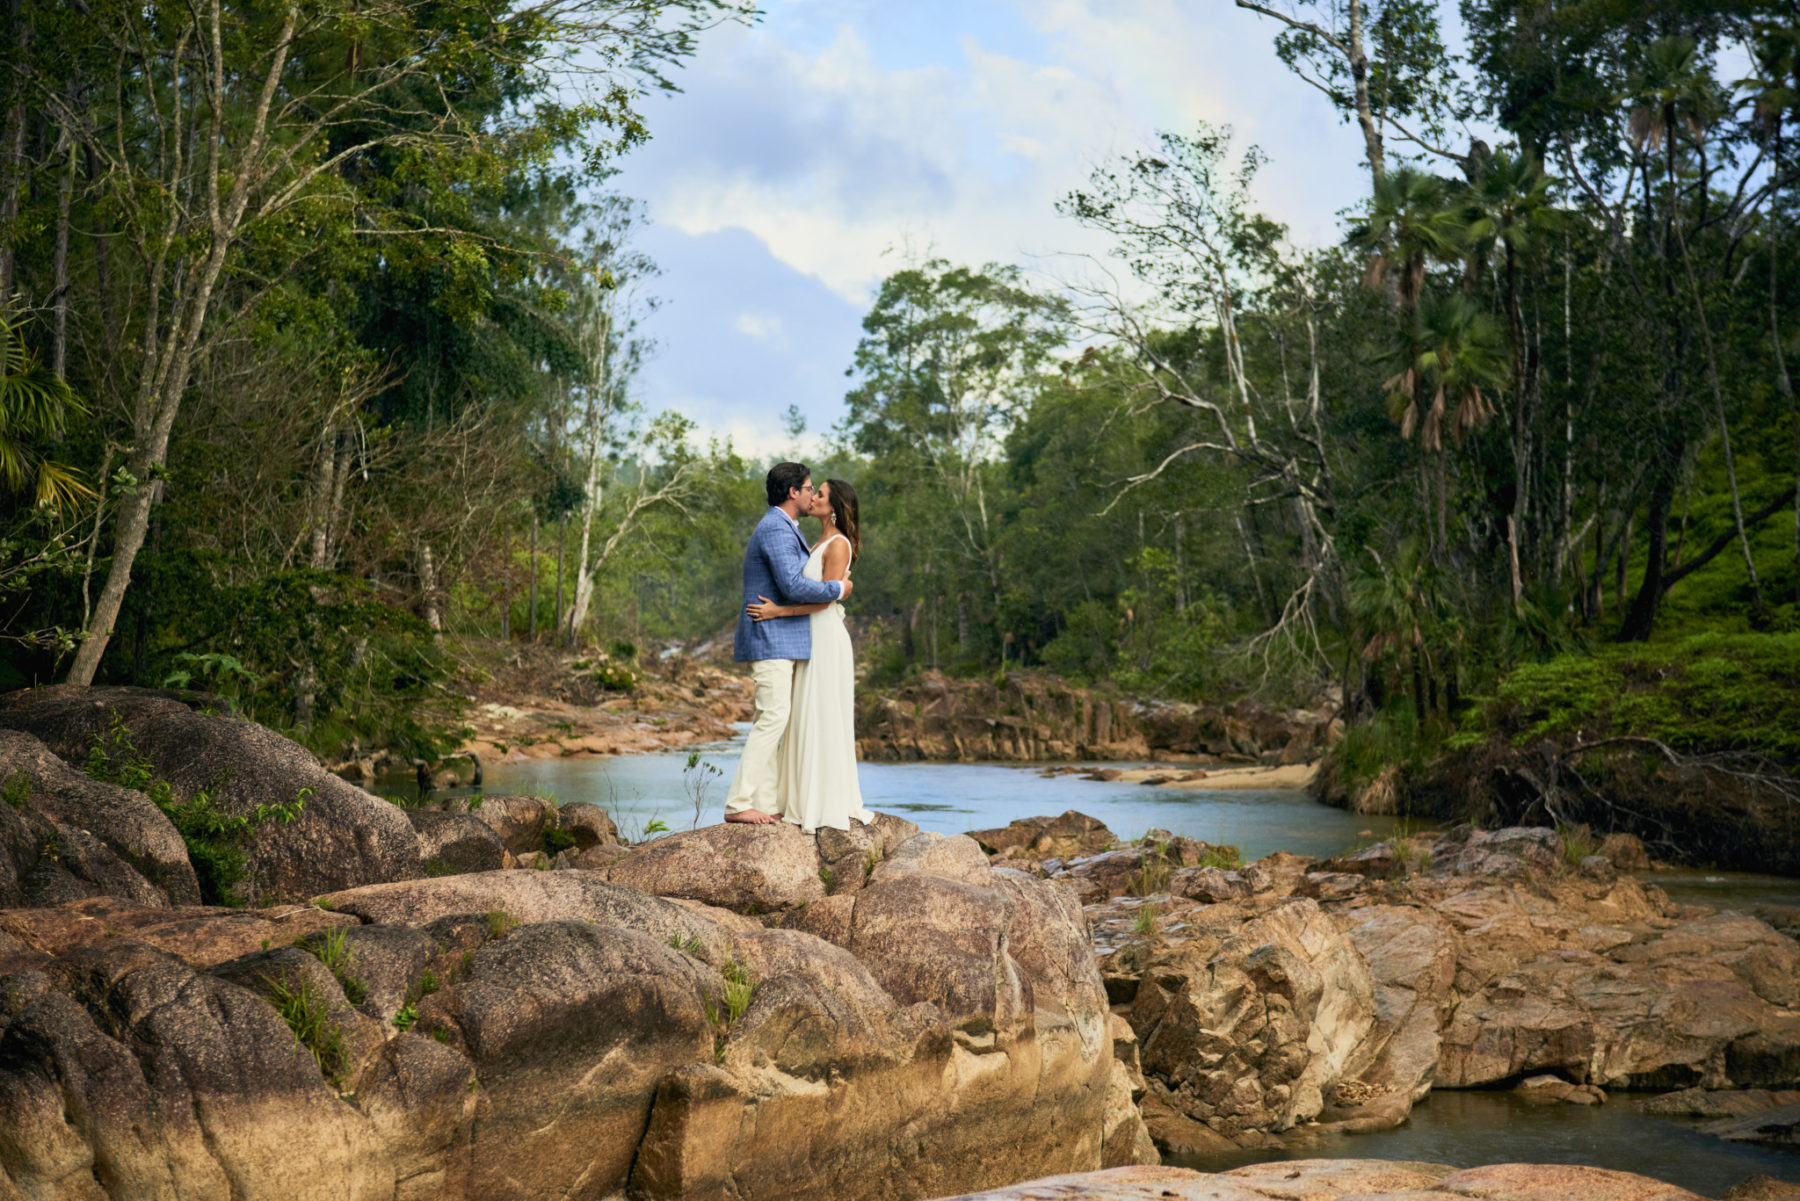 Bride and Groom at Mountain Pine Ridge, Belize